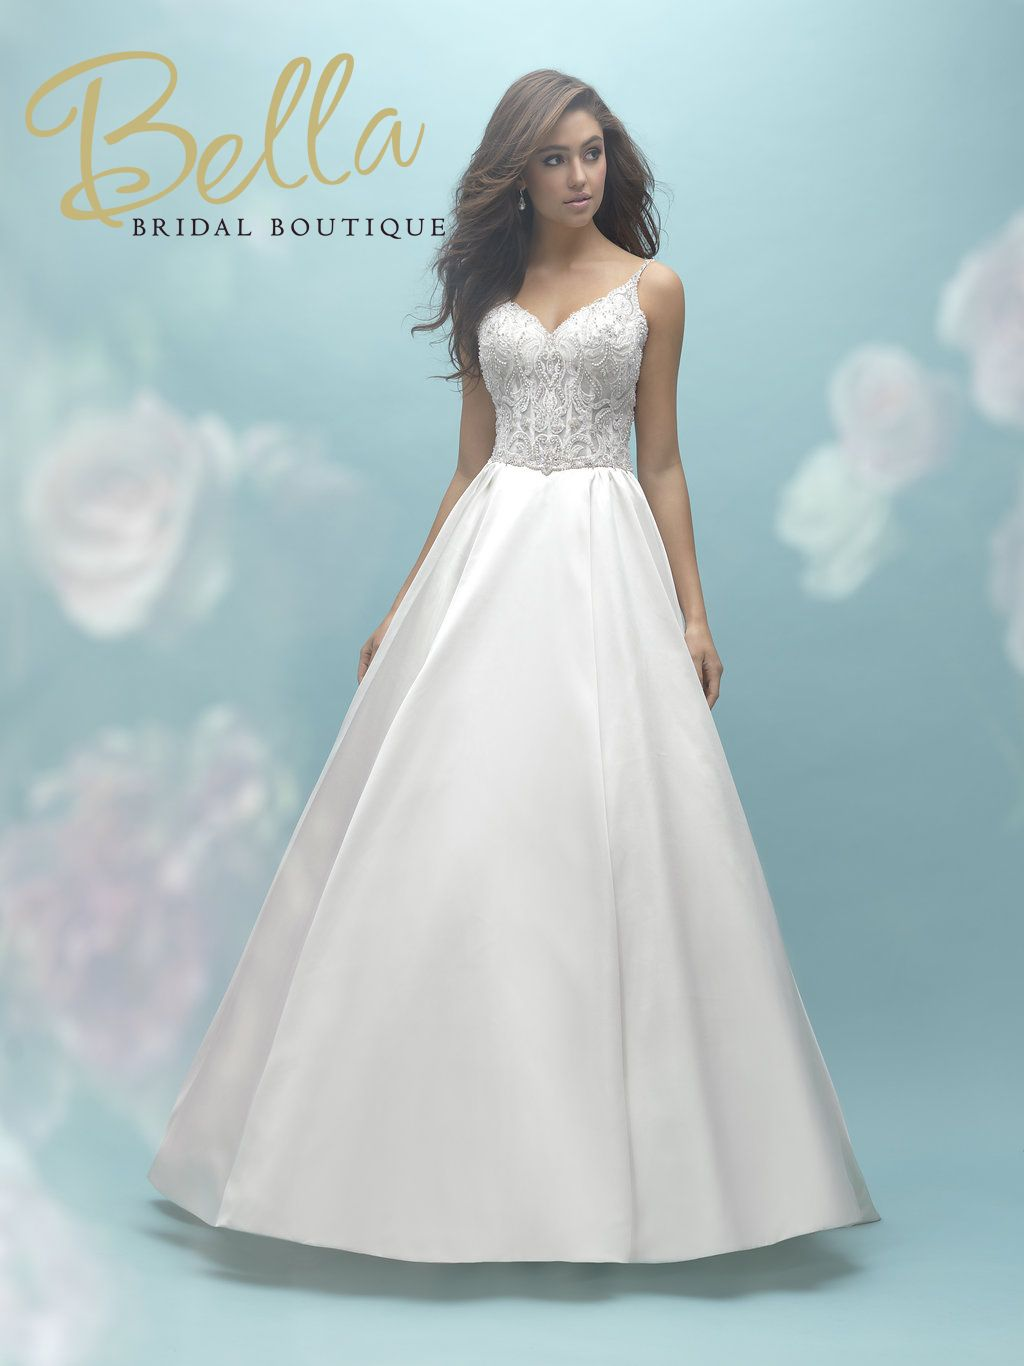 Amazing Ball Gown Wedding Dress - Available at Bella Bridal in ...